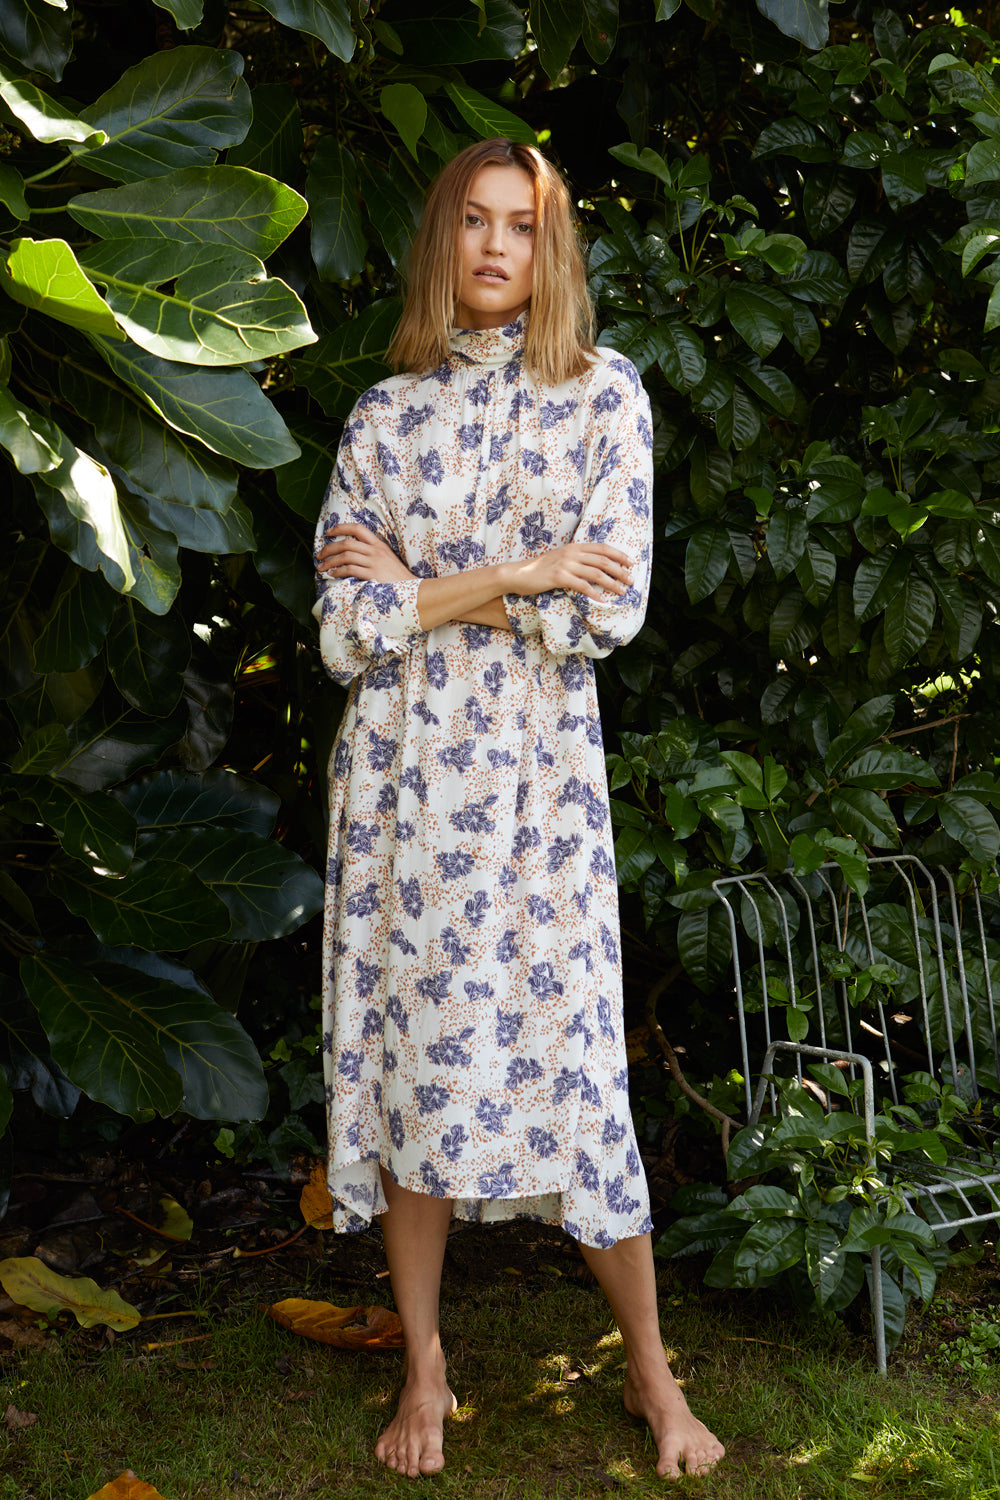 NZ Fashion Clothing Boutique gregorythelabel Gregory SS18 La Paz Dress Made in NZ